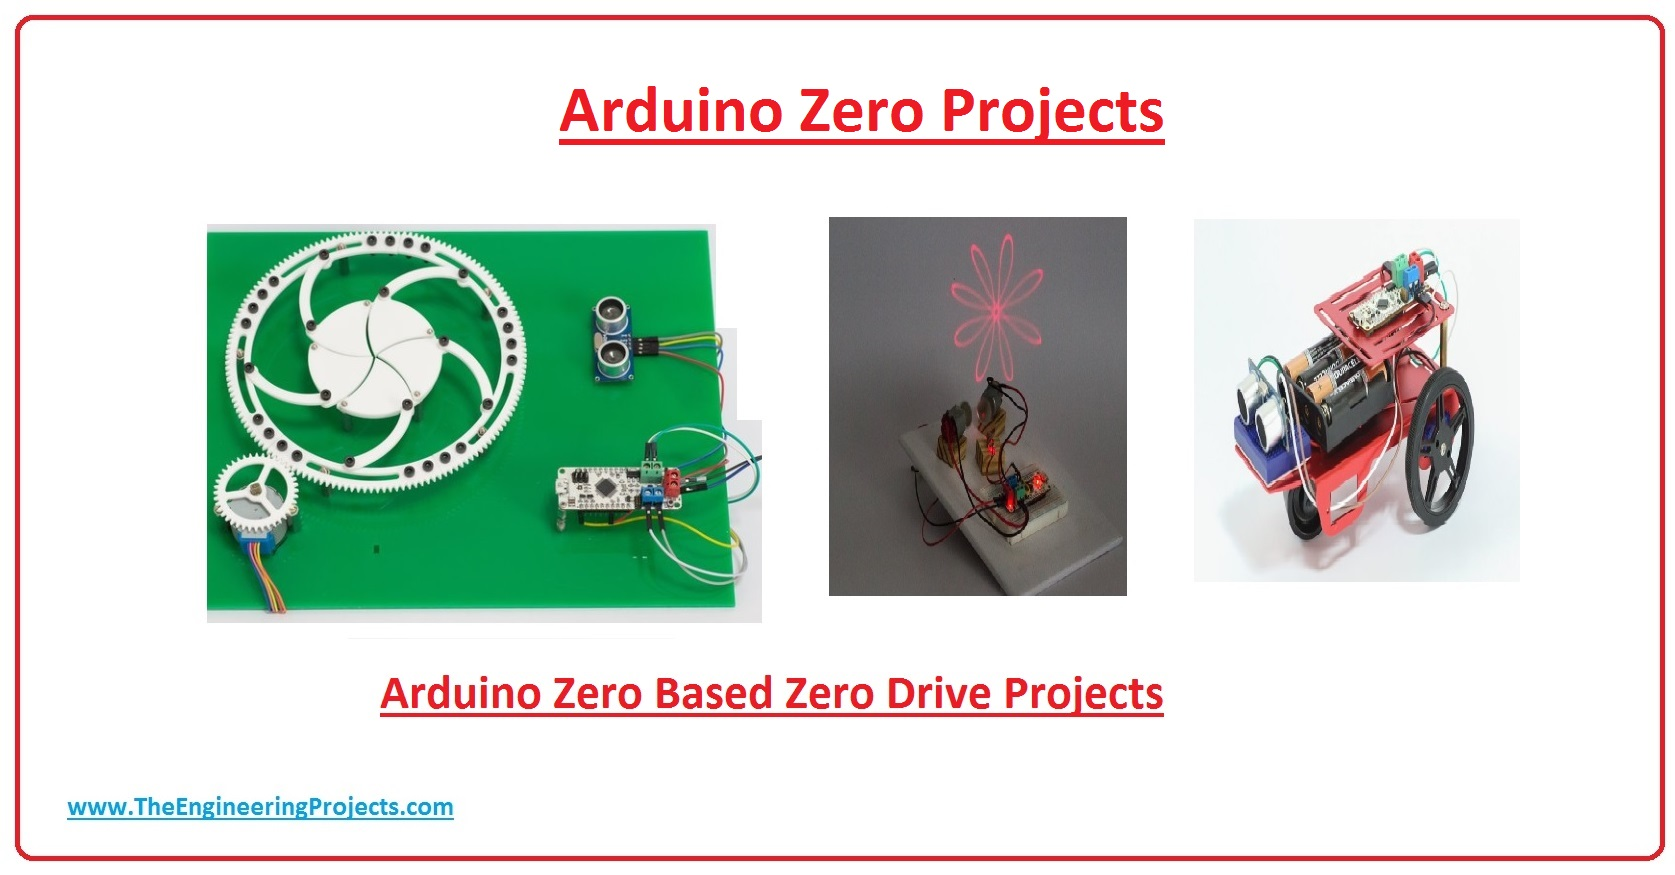 Introduction to Arduino Zero - The Engineering Projects